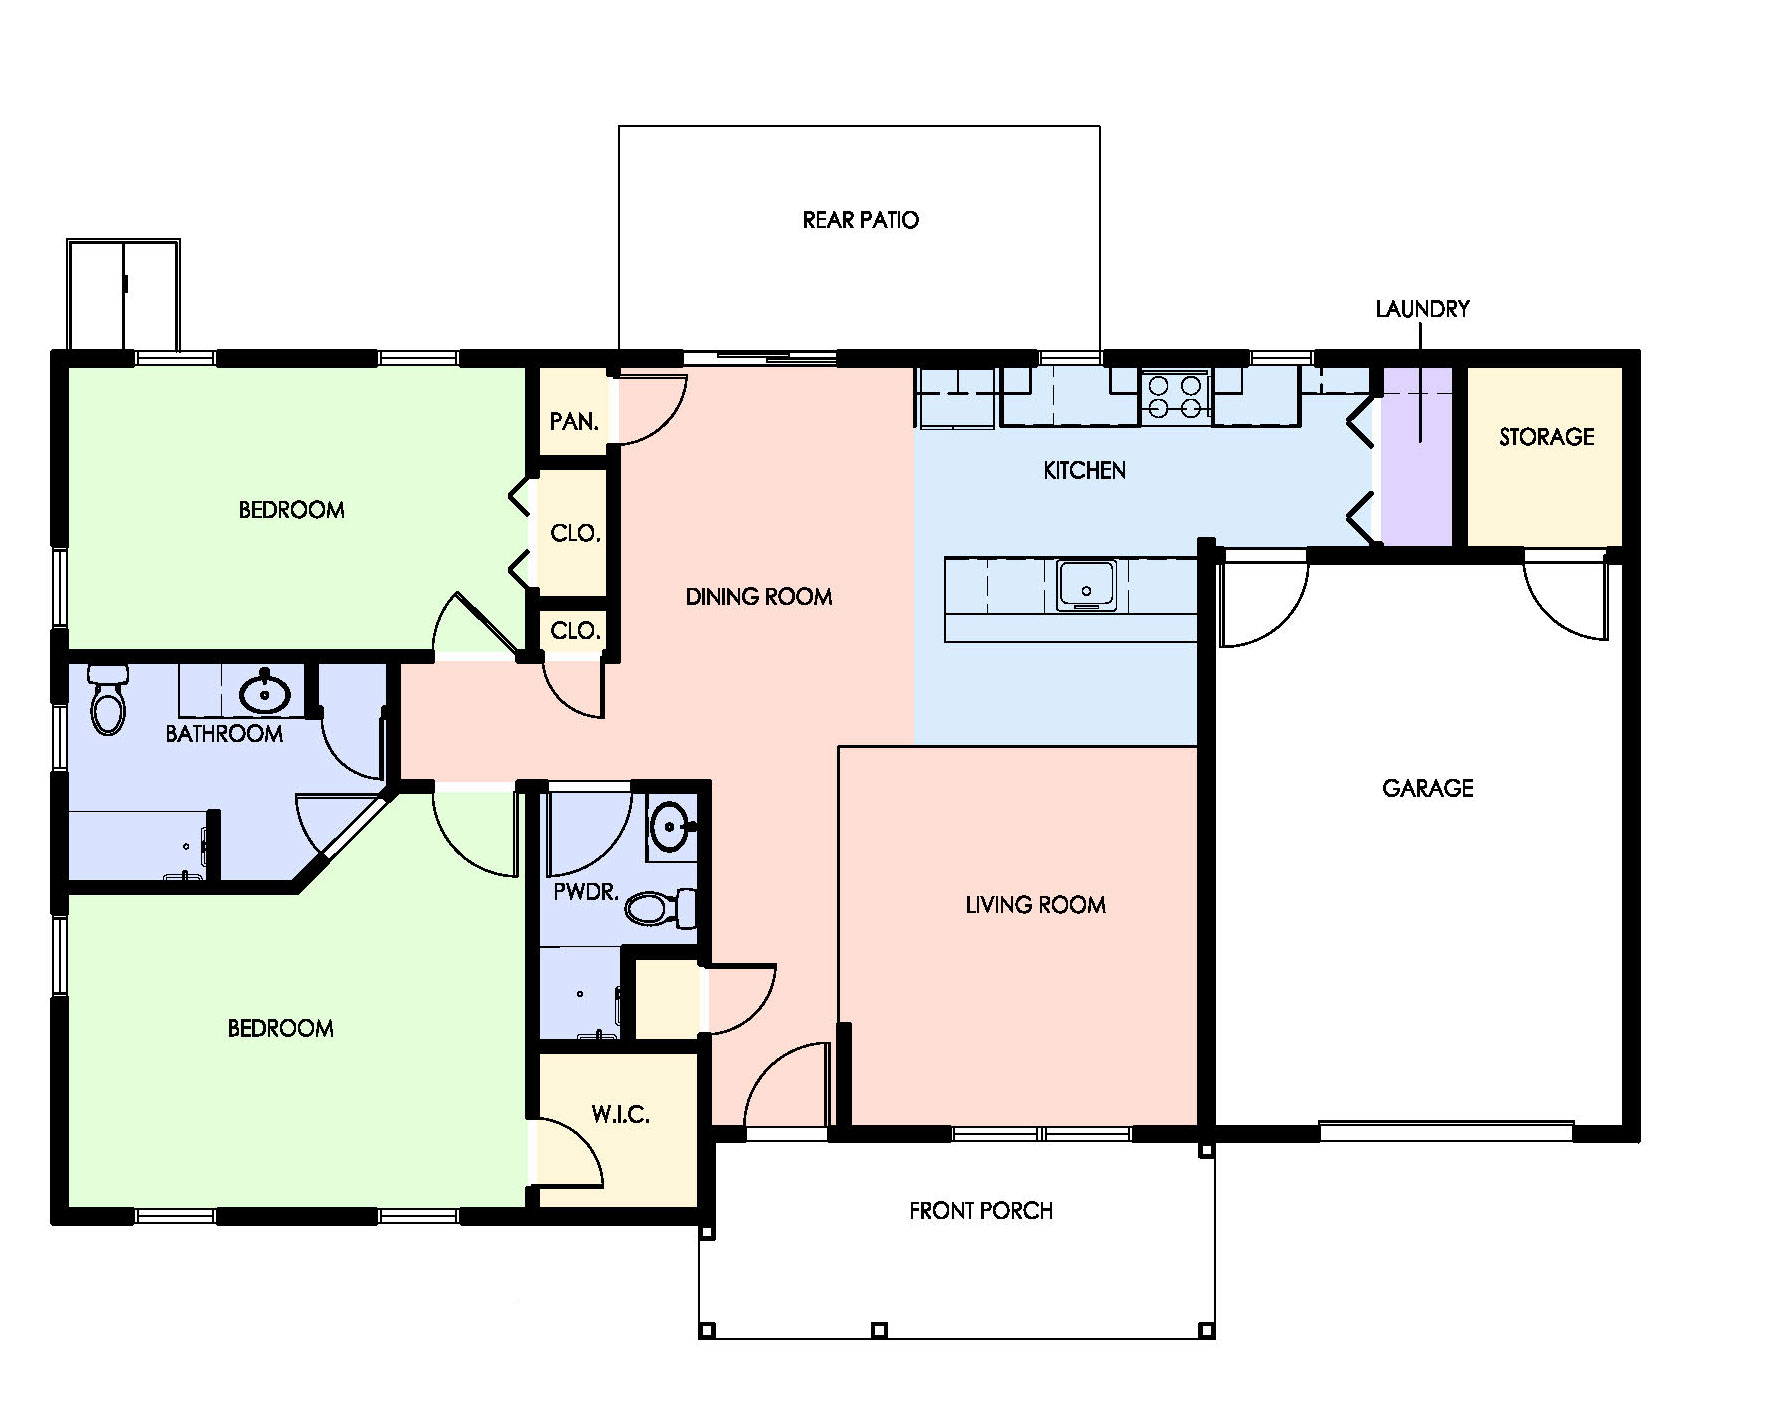 Expansion Project Floor Plan